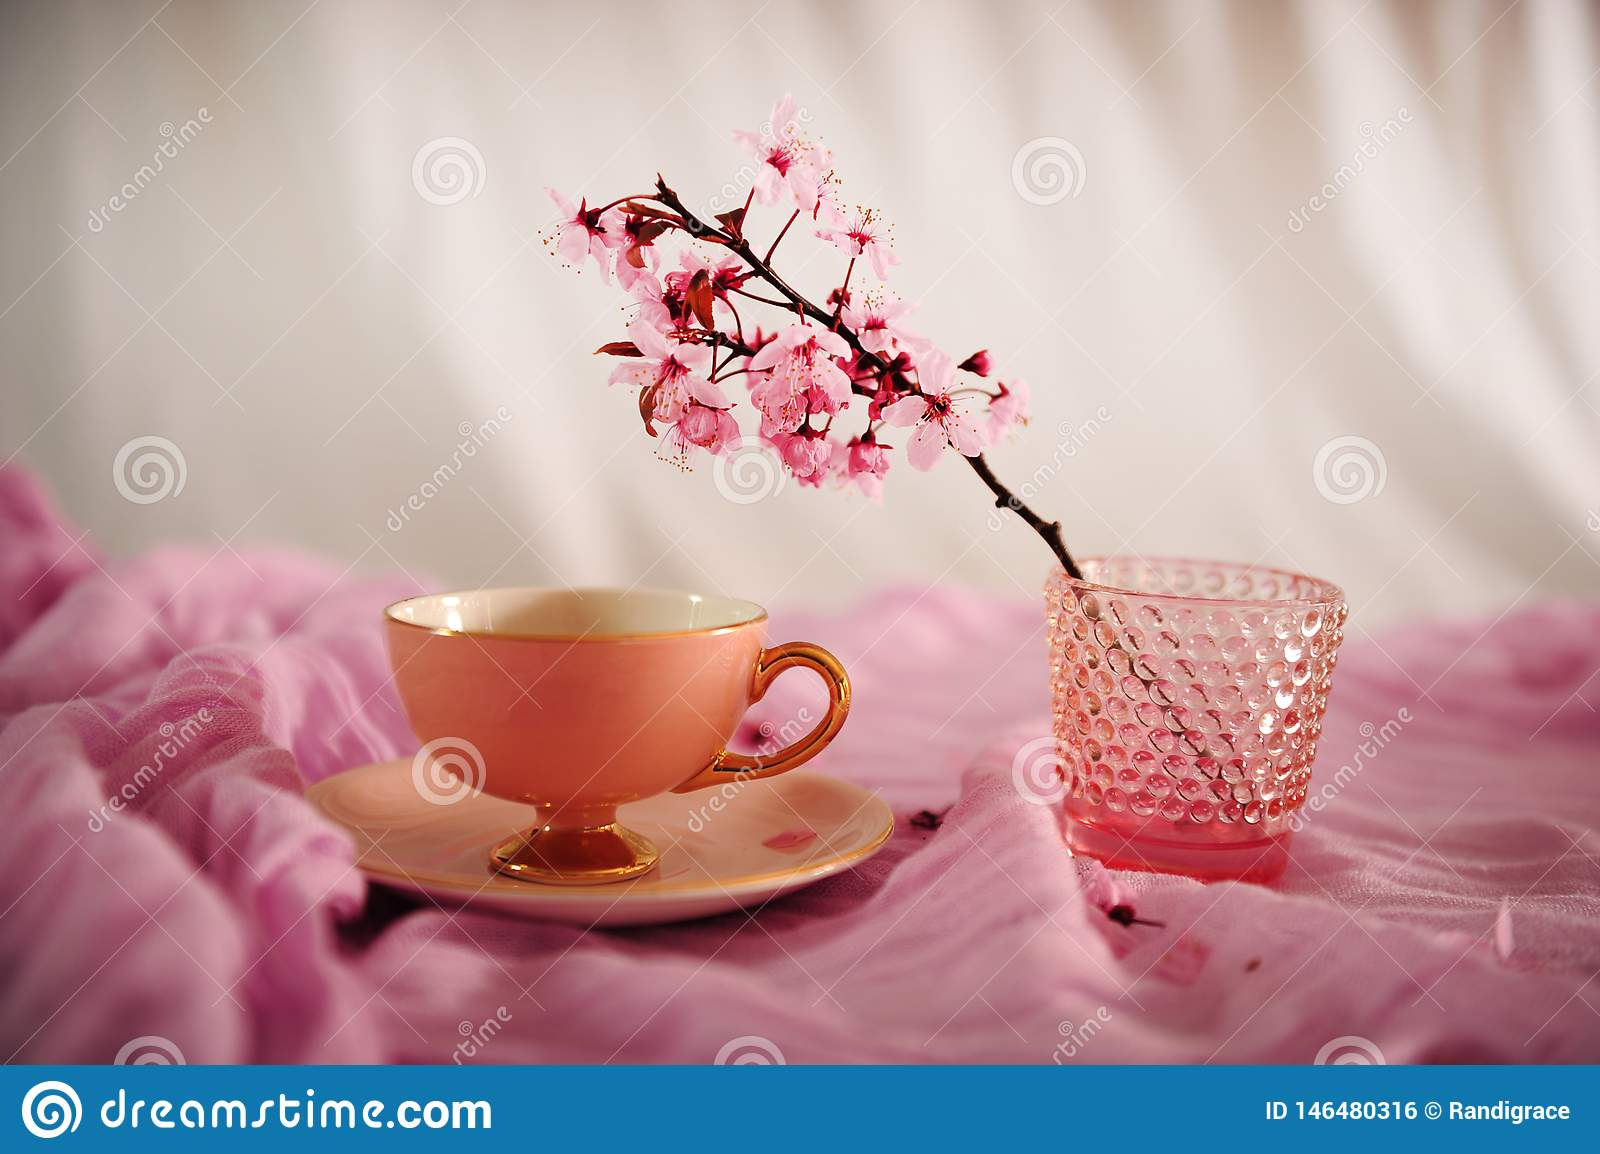 Pink Vintage Coffee Cup and Cherry Blossoms